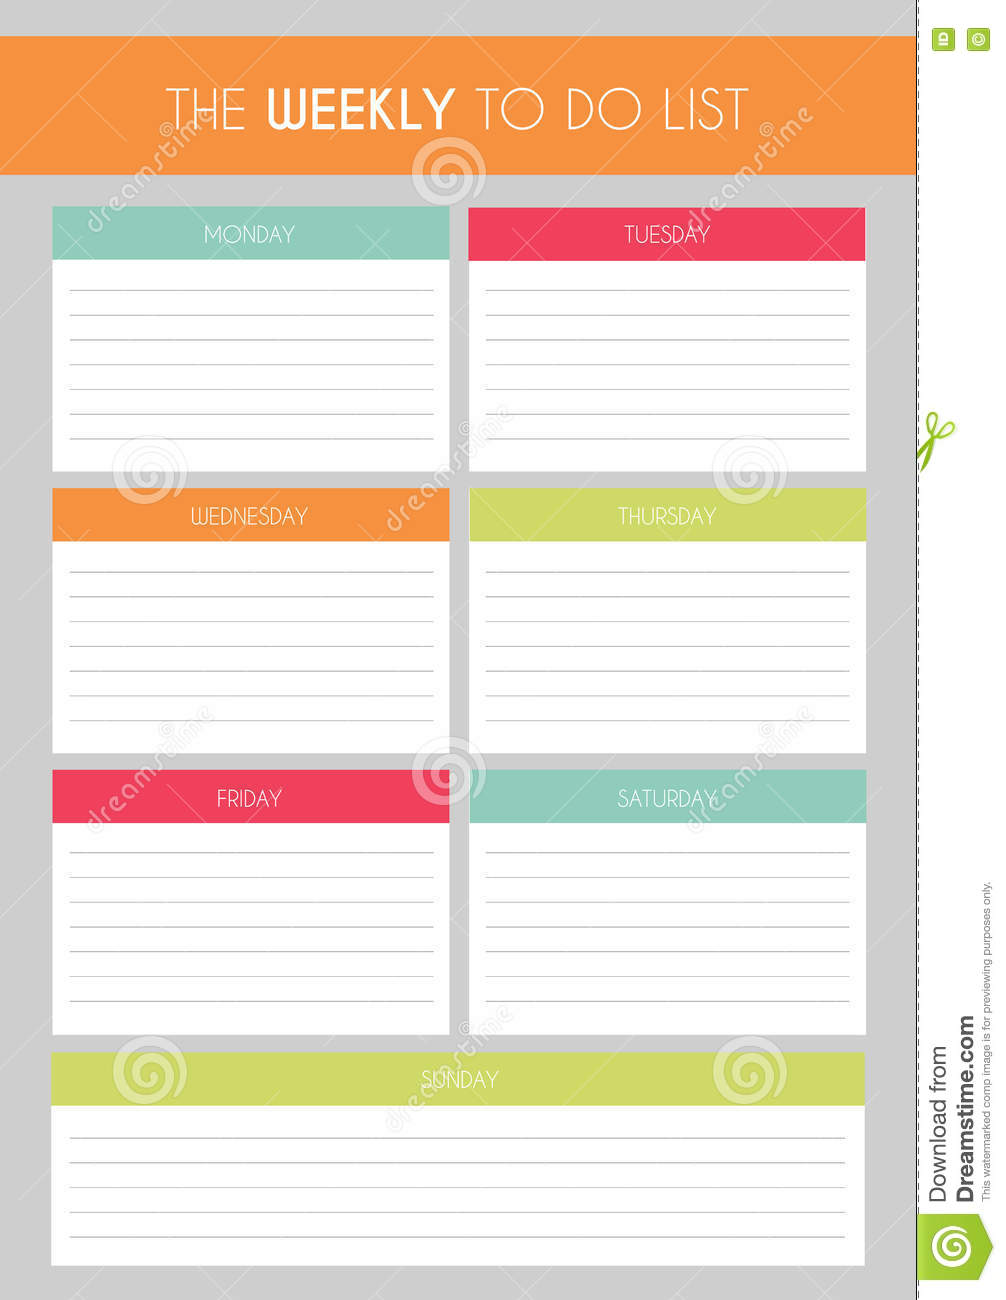 Template Simple Colorful The Weekly To Do List – Simple to Do List Template